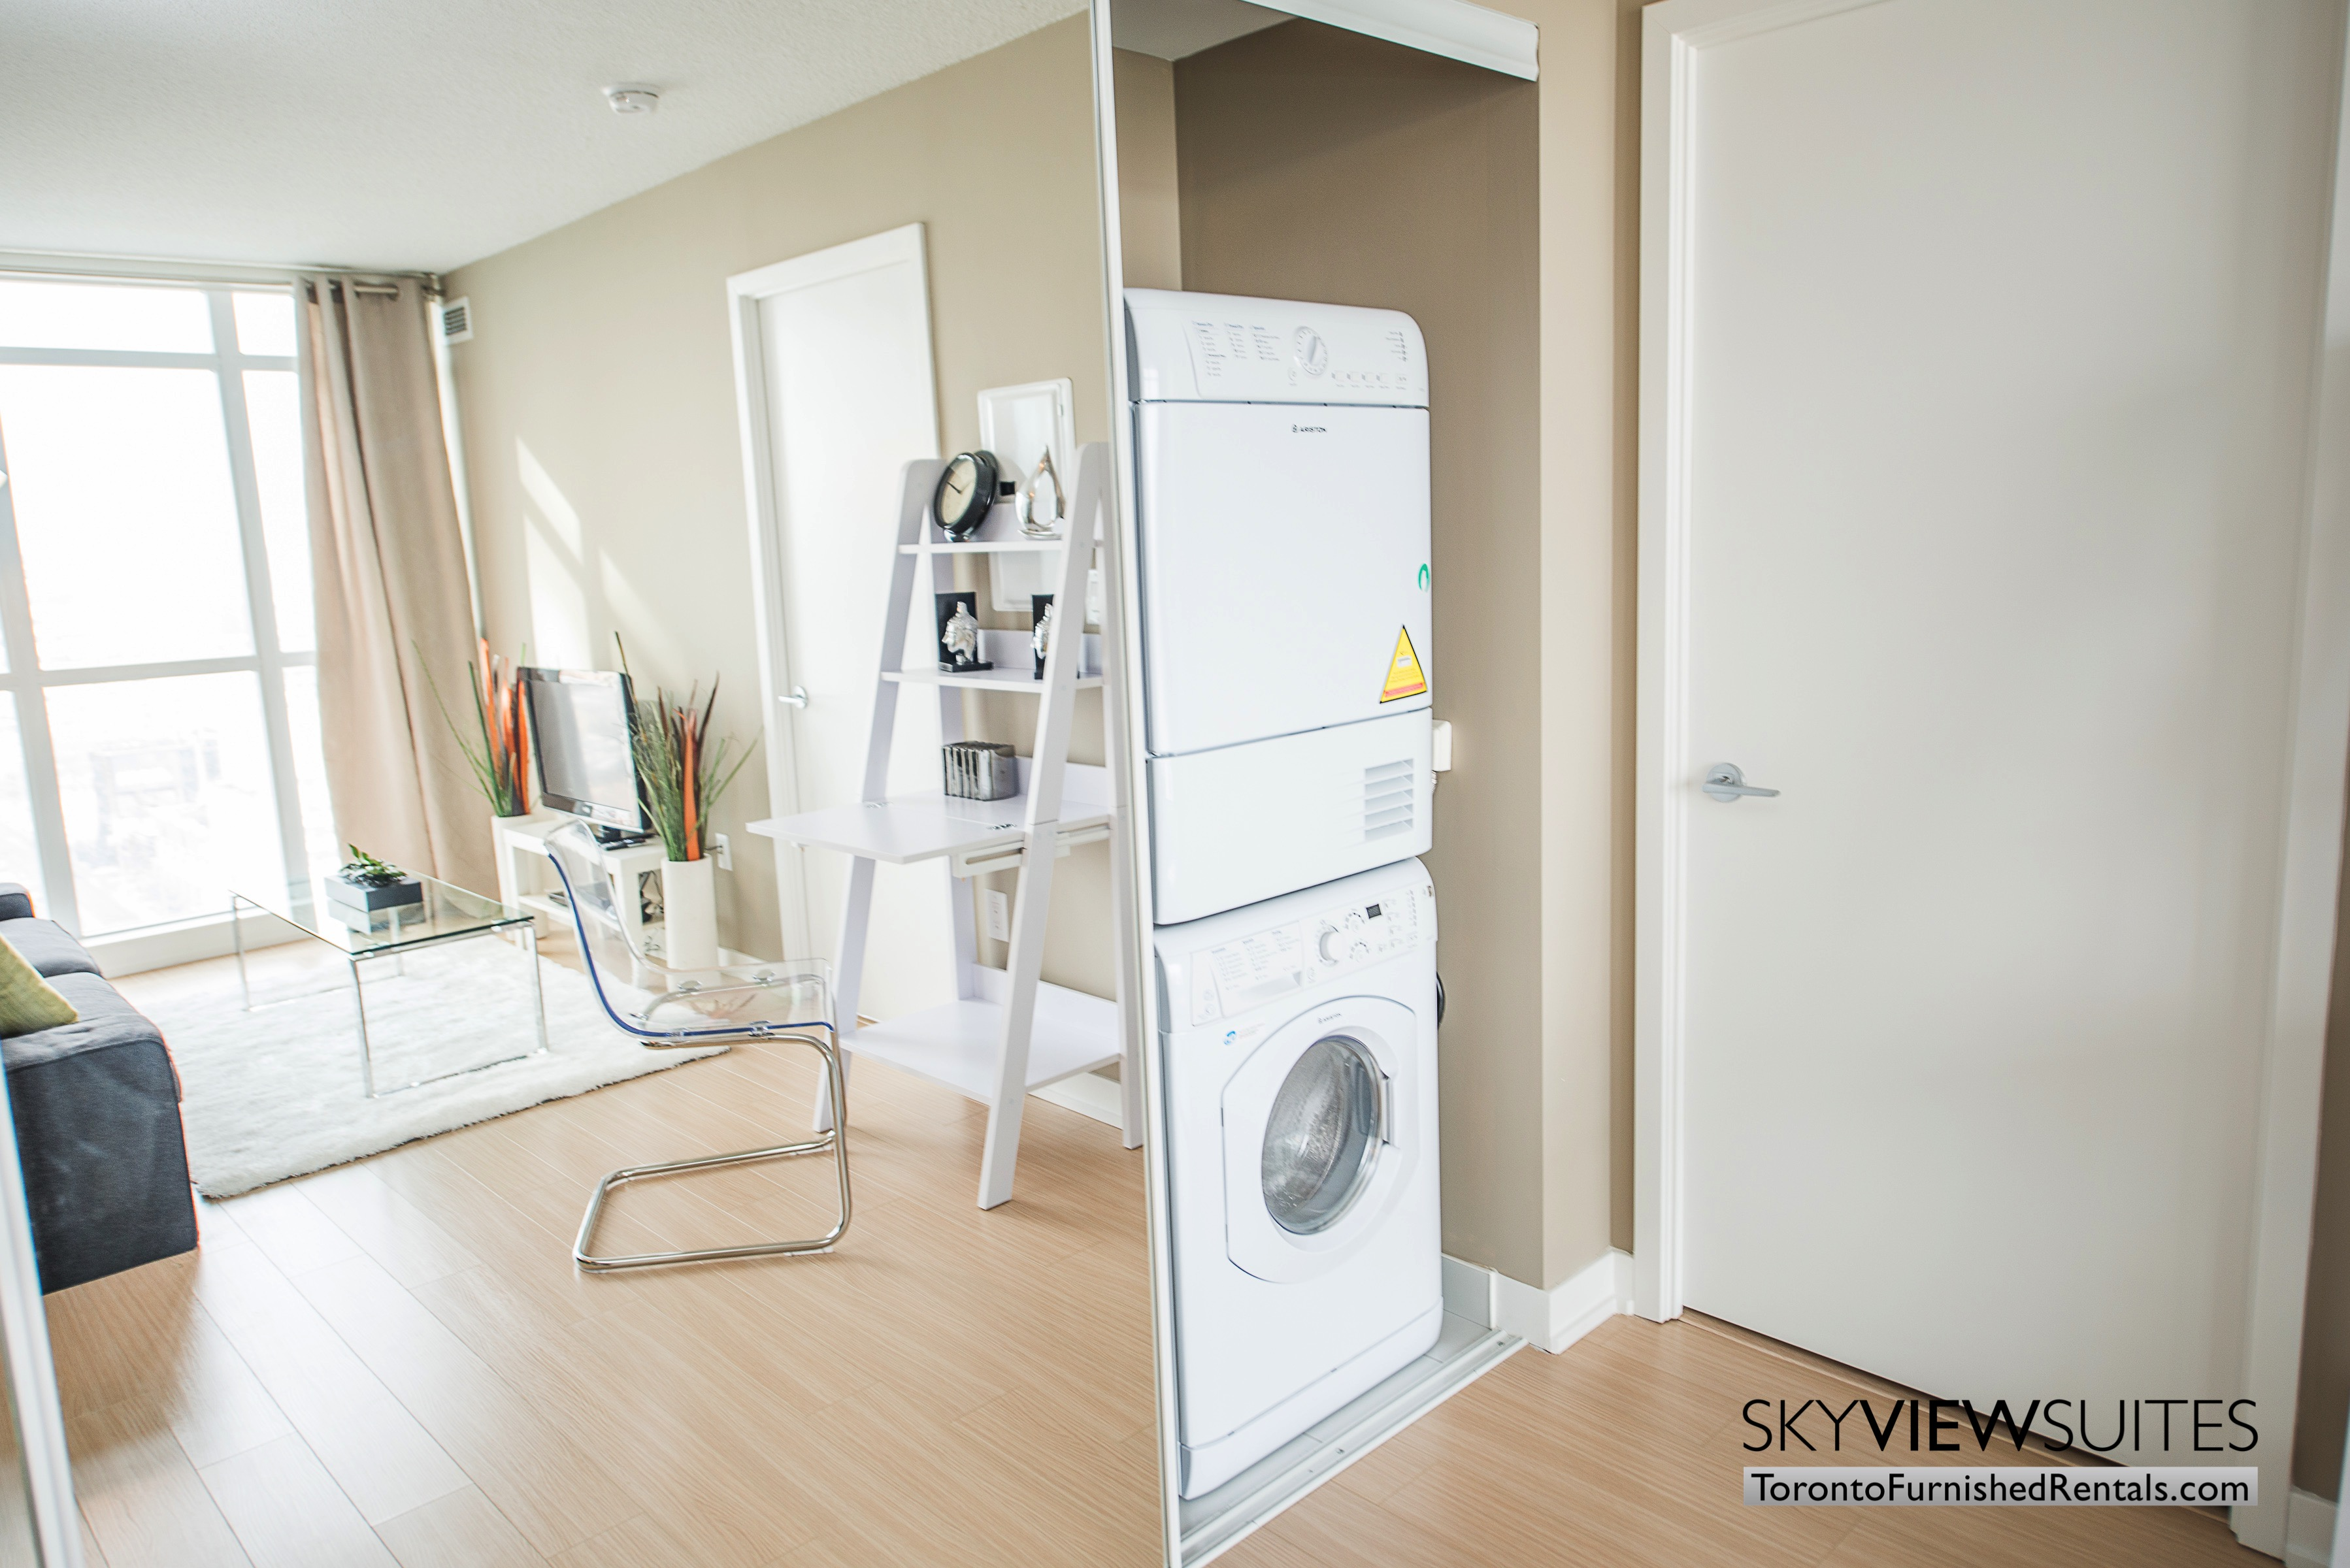 furnished apartments toronto parade mirror and washer/dryer machine